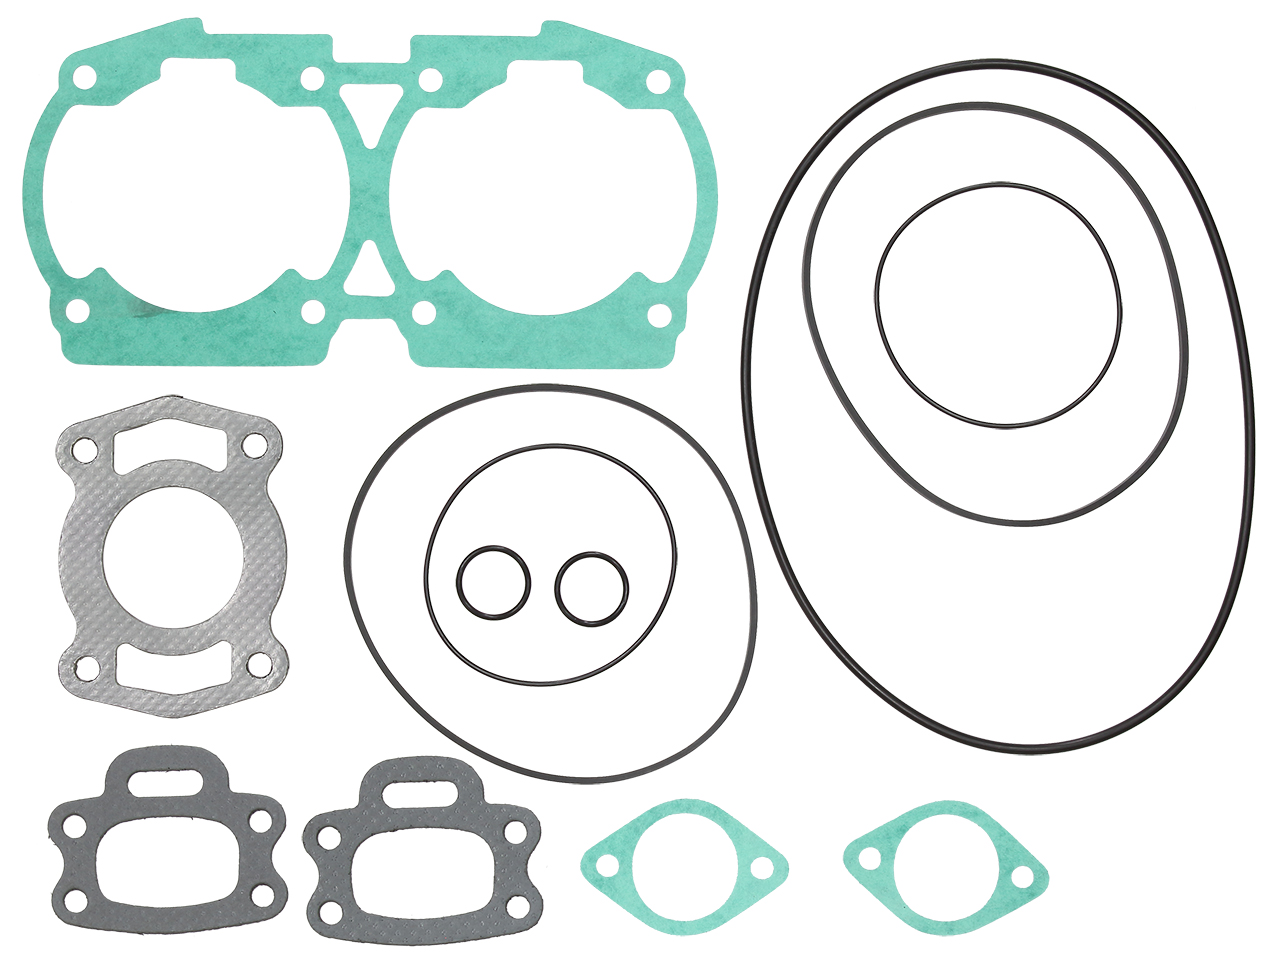 NAMURA TOP END GASKET KIT NW-10004T